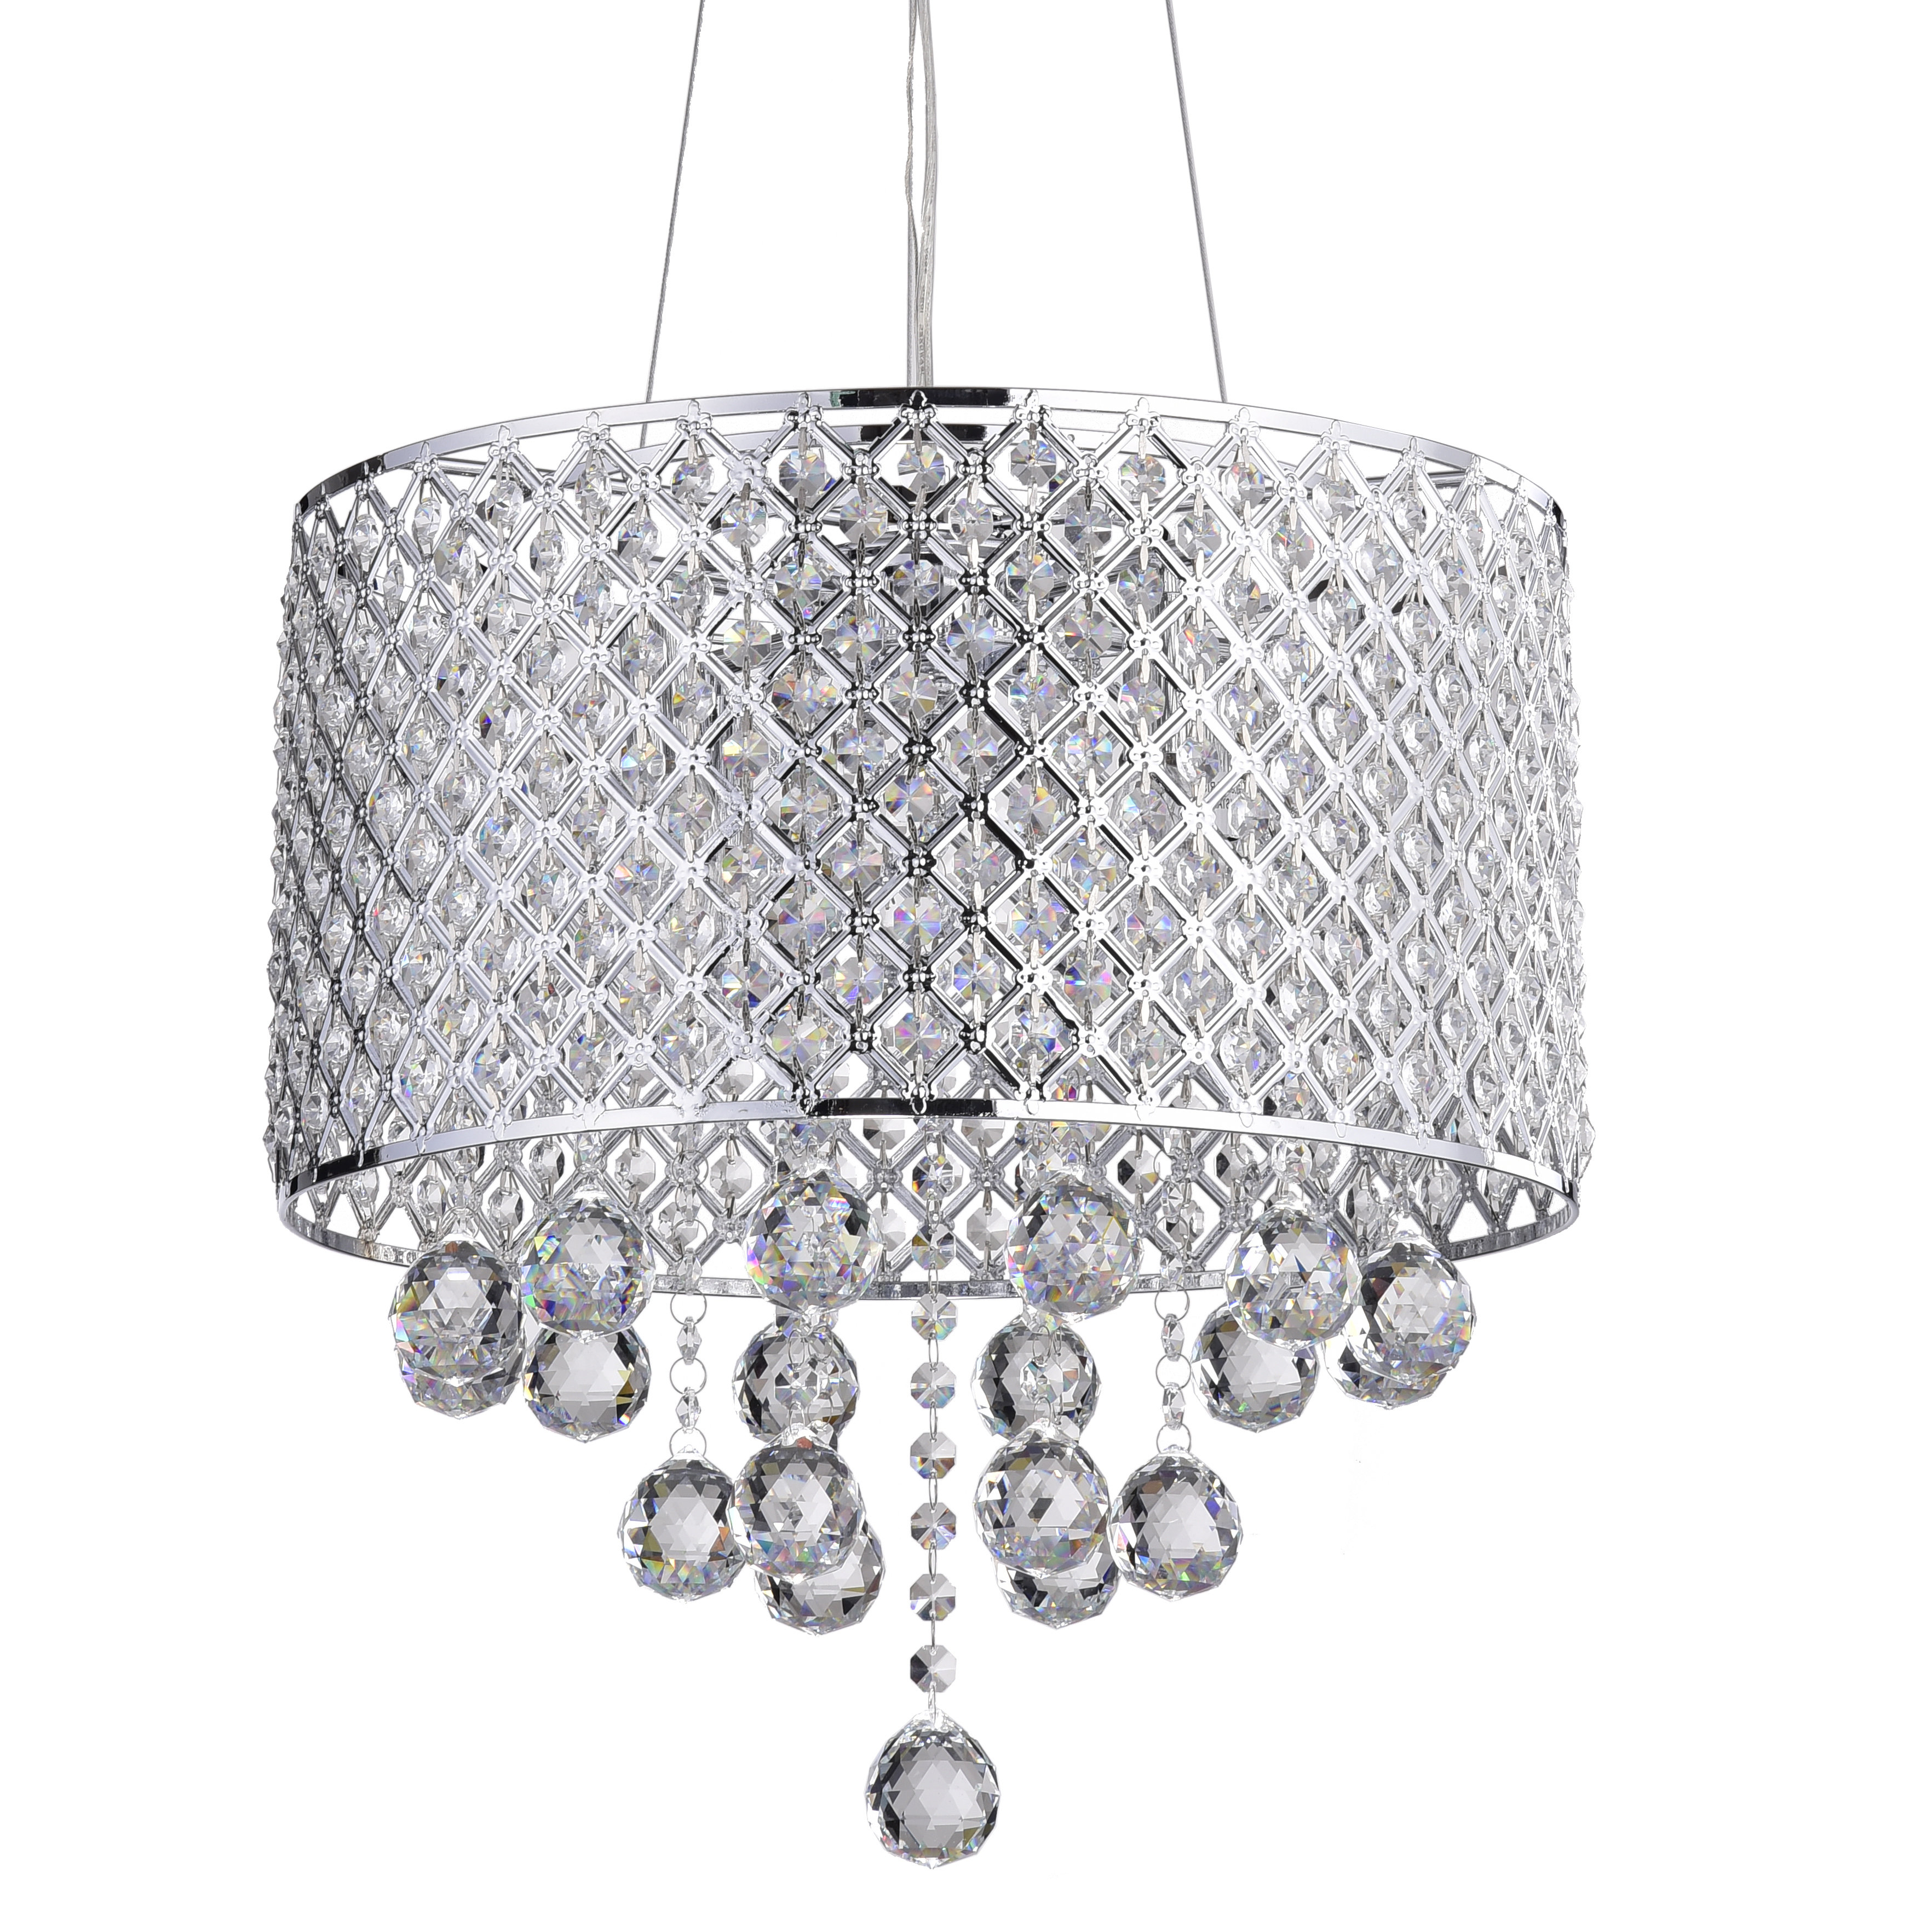 Aldgate 4 Light Crystal Chandeliers For Current Ginnia 4 Light Crystal Chandelier (View 1 of 20)